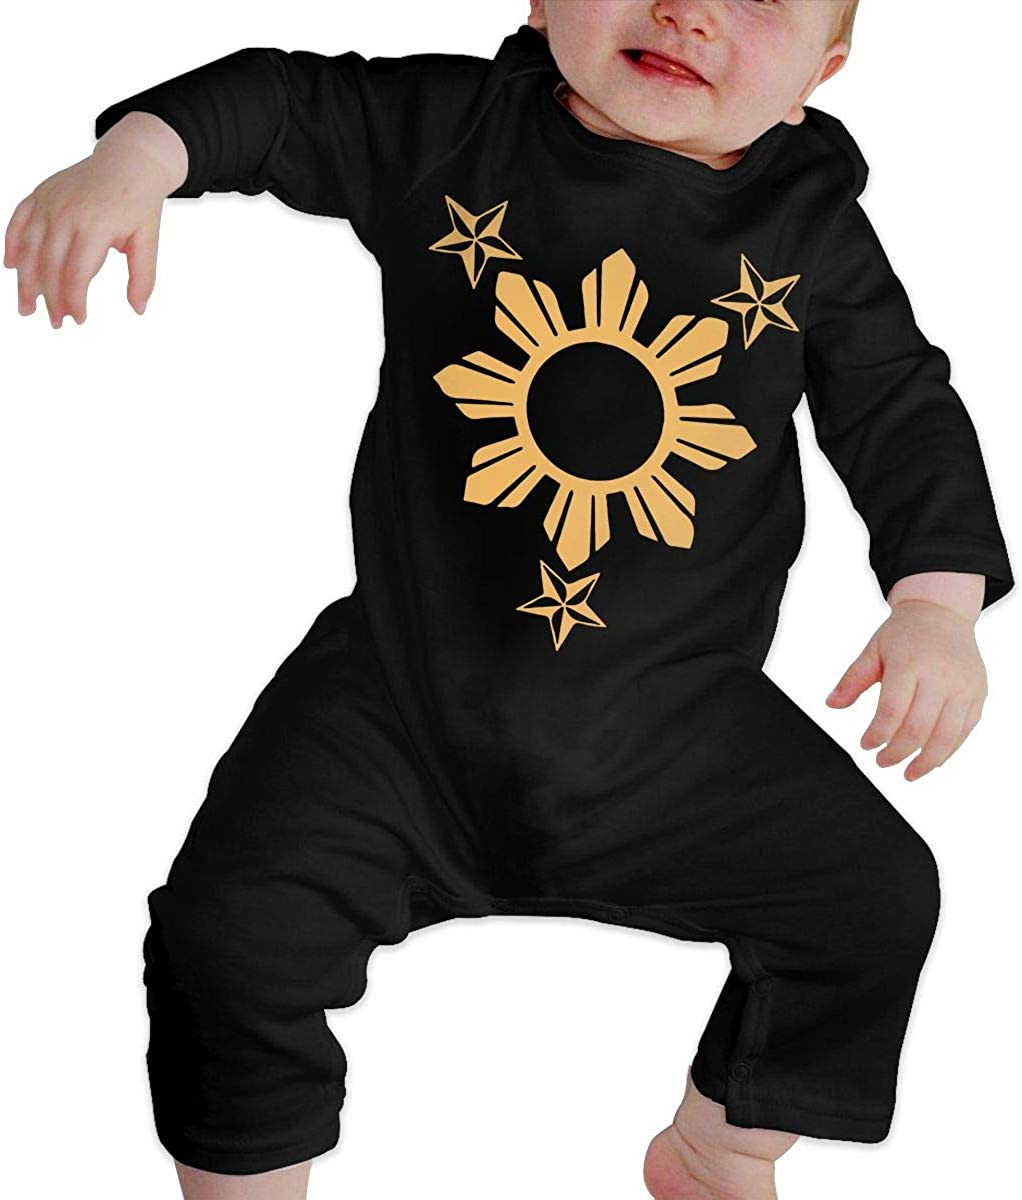 Love Philippines National Flag Unisex Baby Bodysuit Infant Cotton Outfits Long Sleeve Jumpsuit